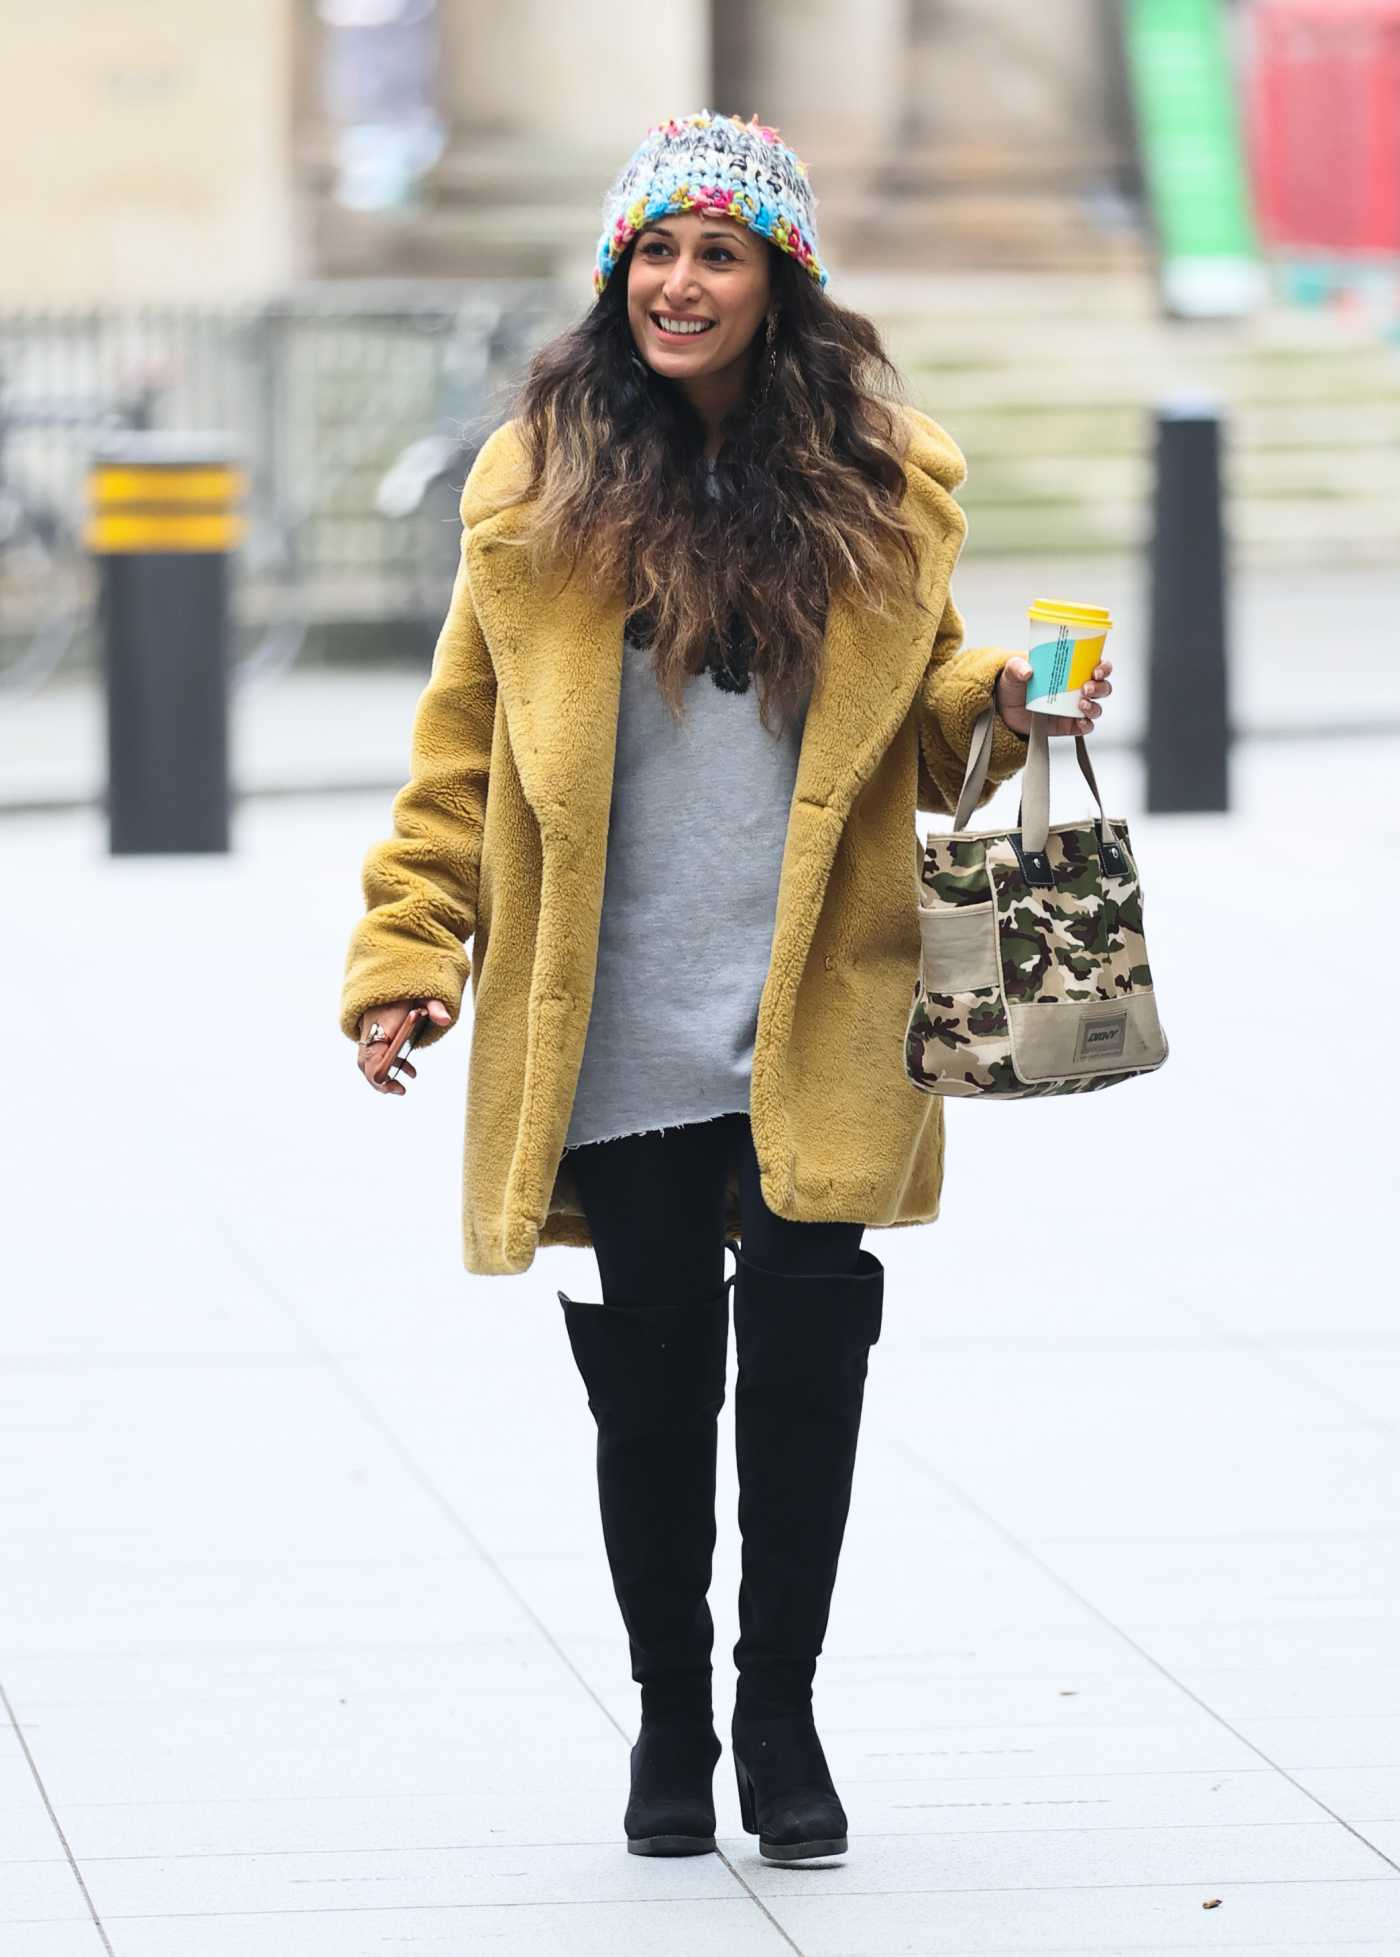 Preeya Kalidas in a Yellow Fur Coat Arrives  at BBC Broadcasting House in Lodon 11/28/2020